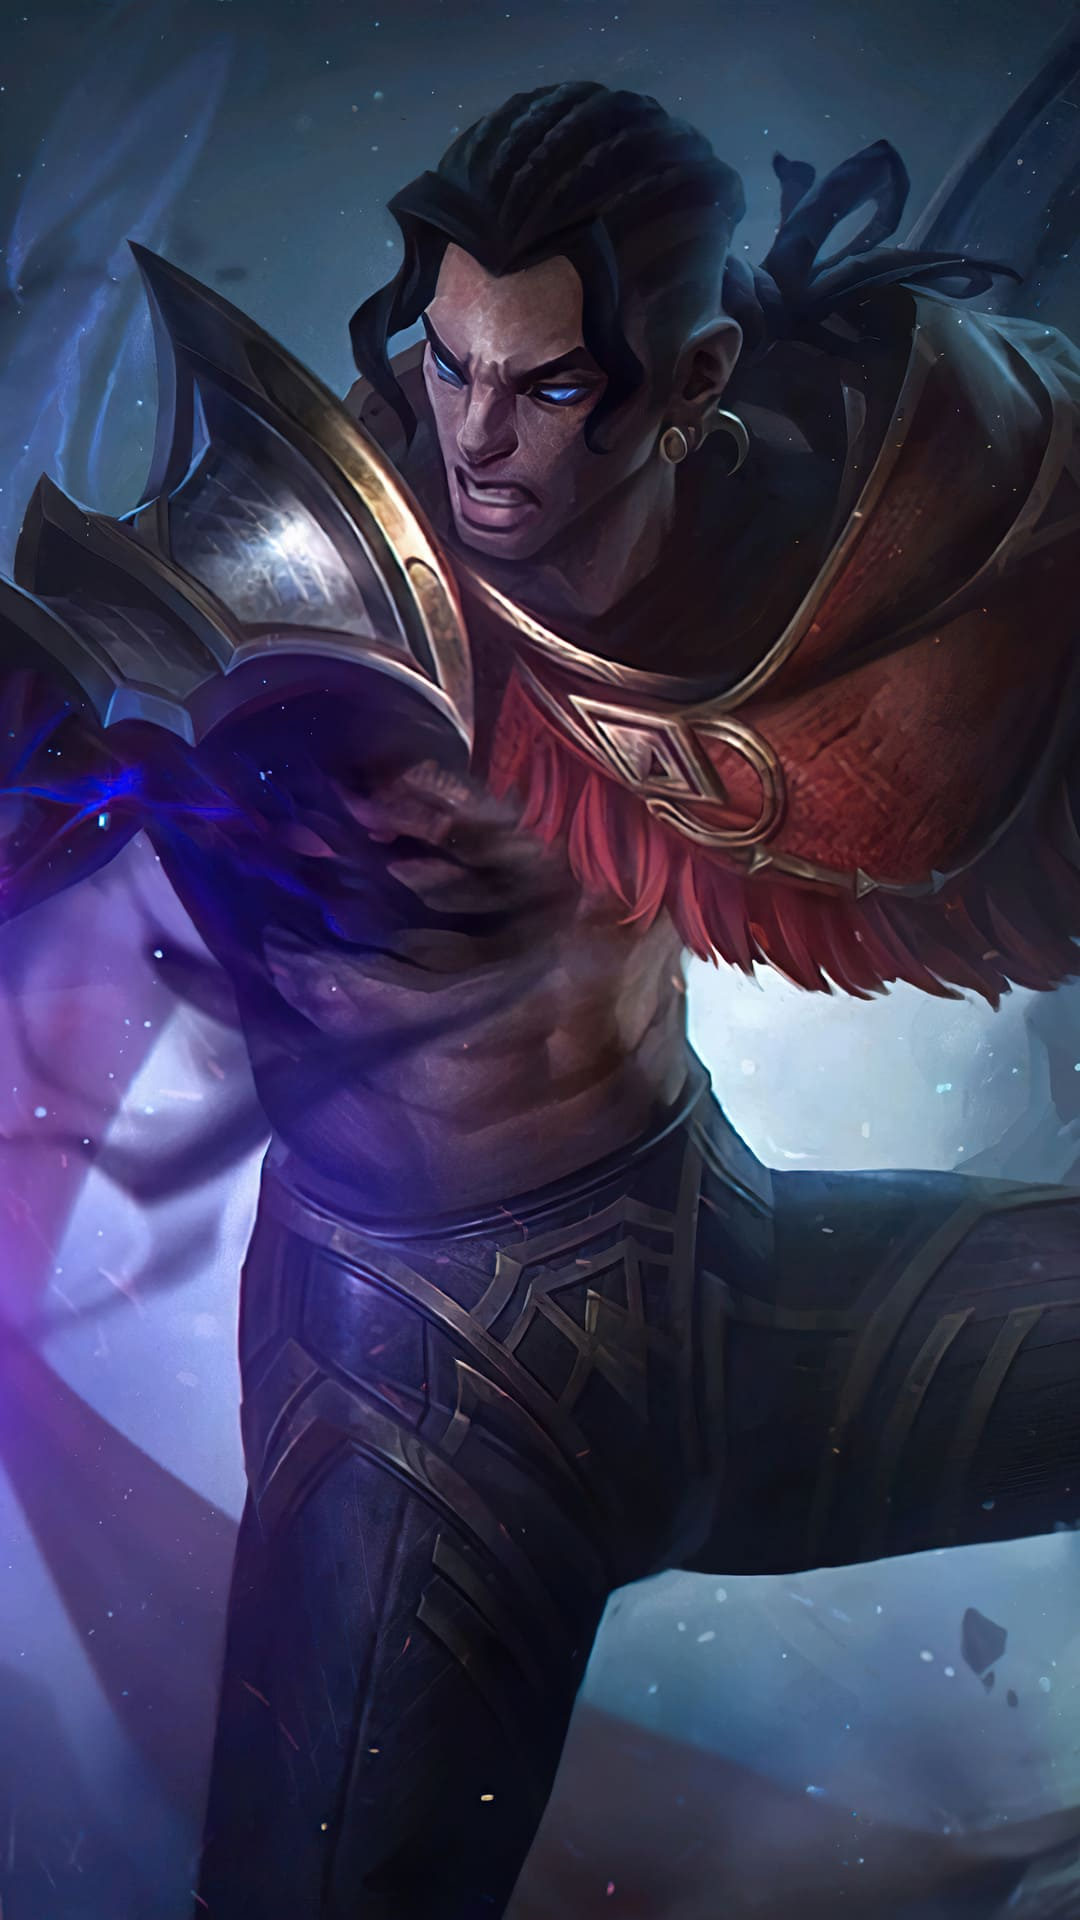 Gambar Brody mobile legends hd for mobile